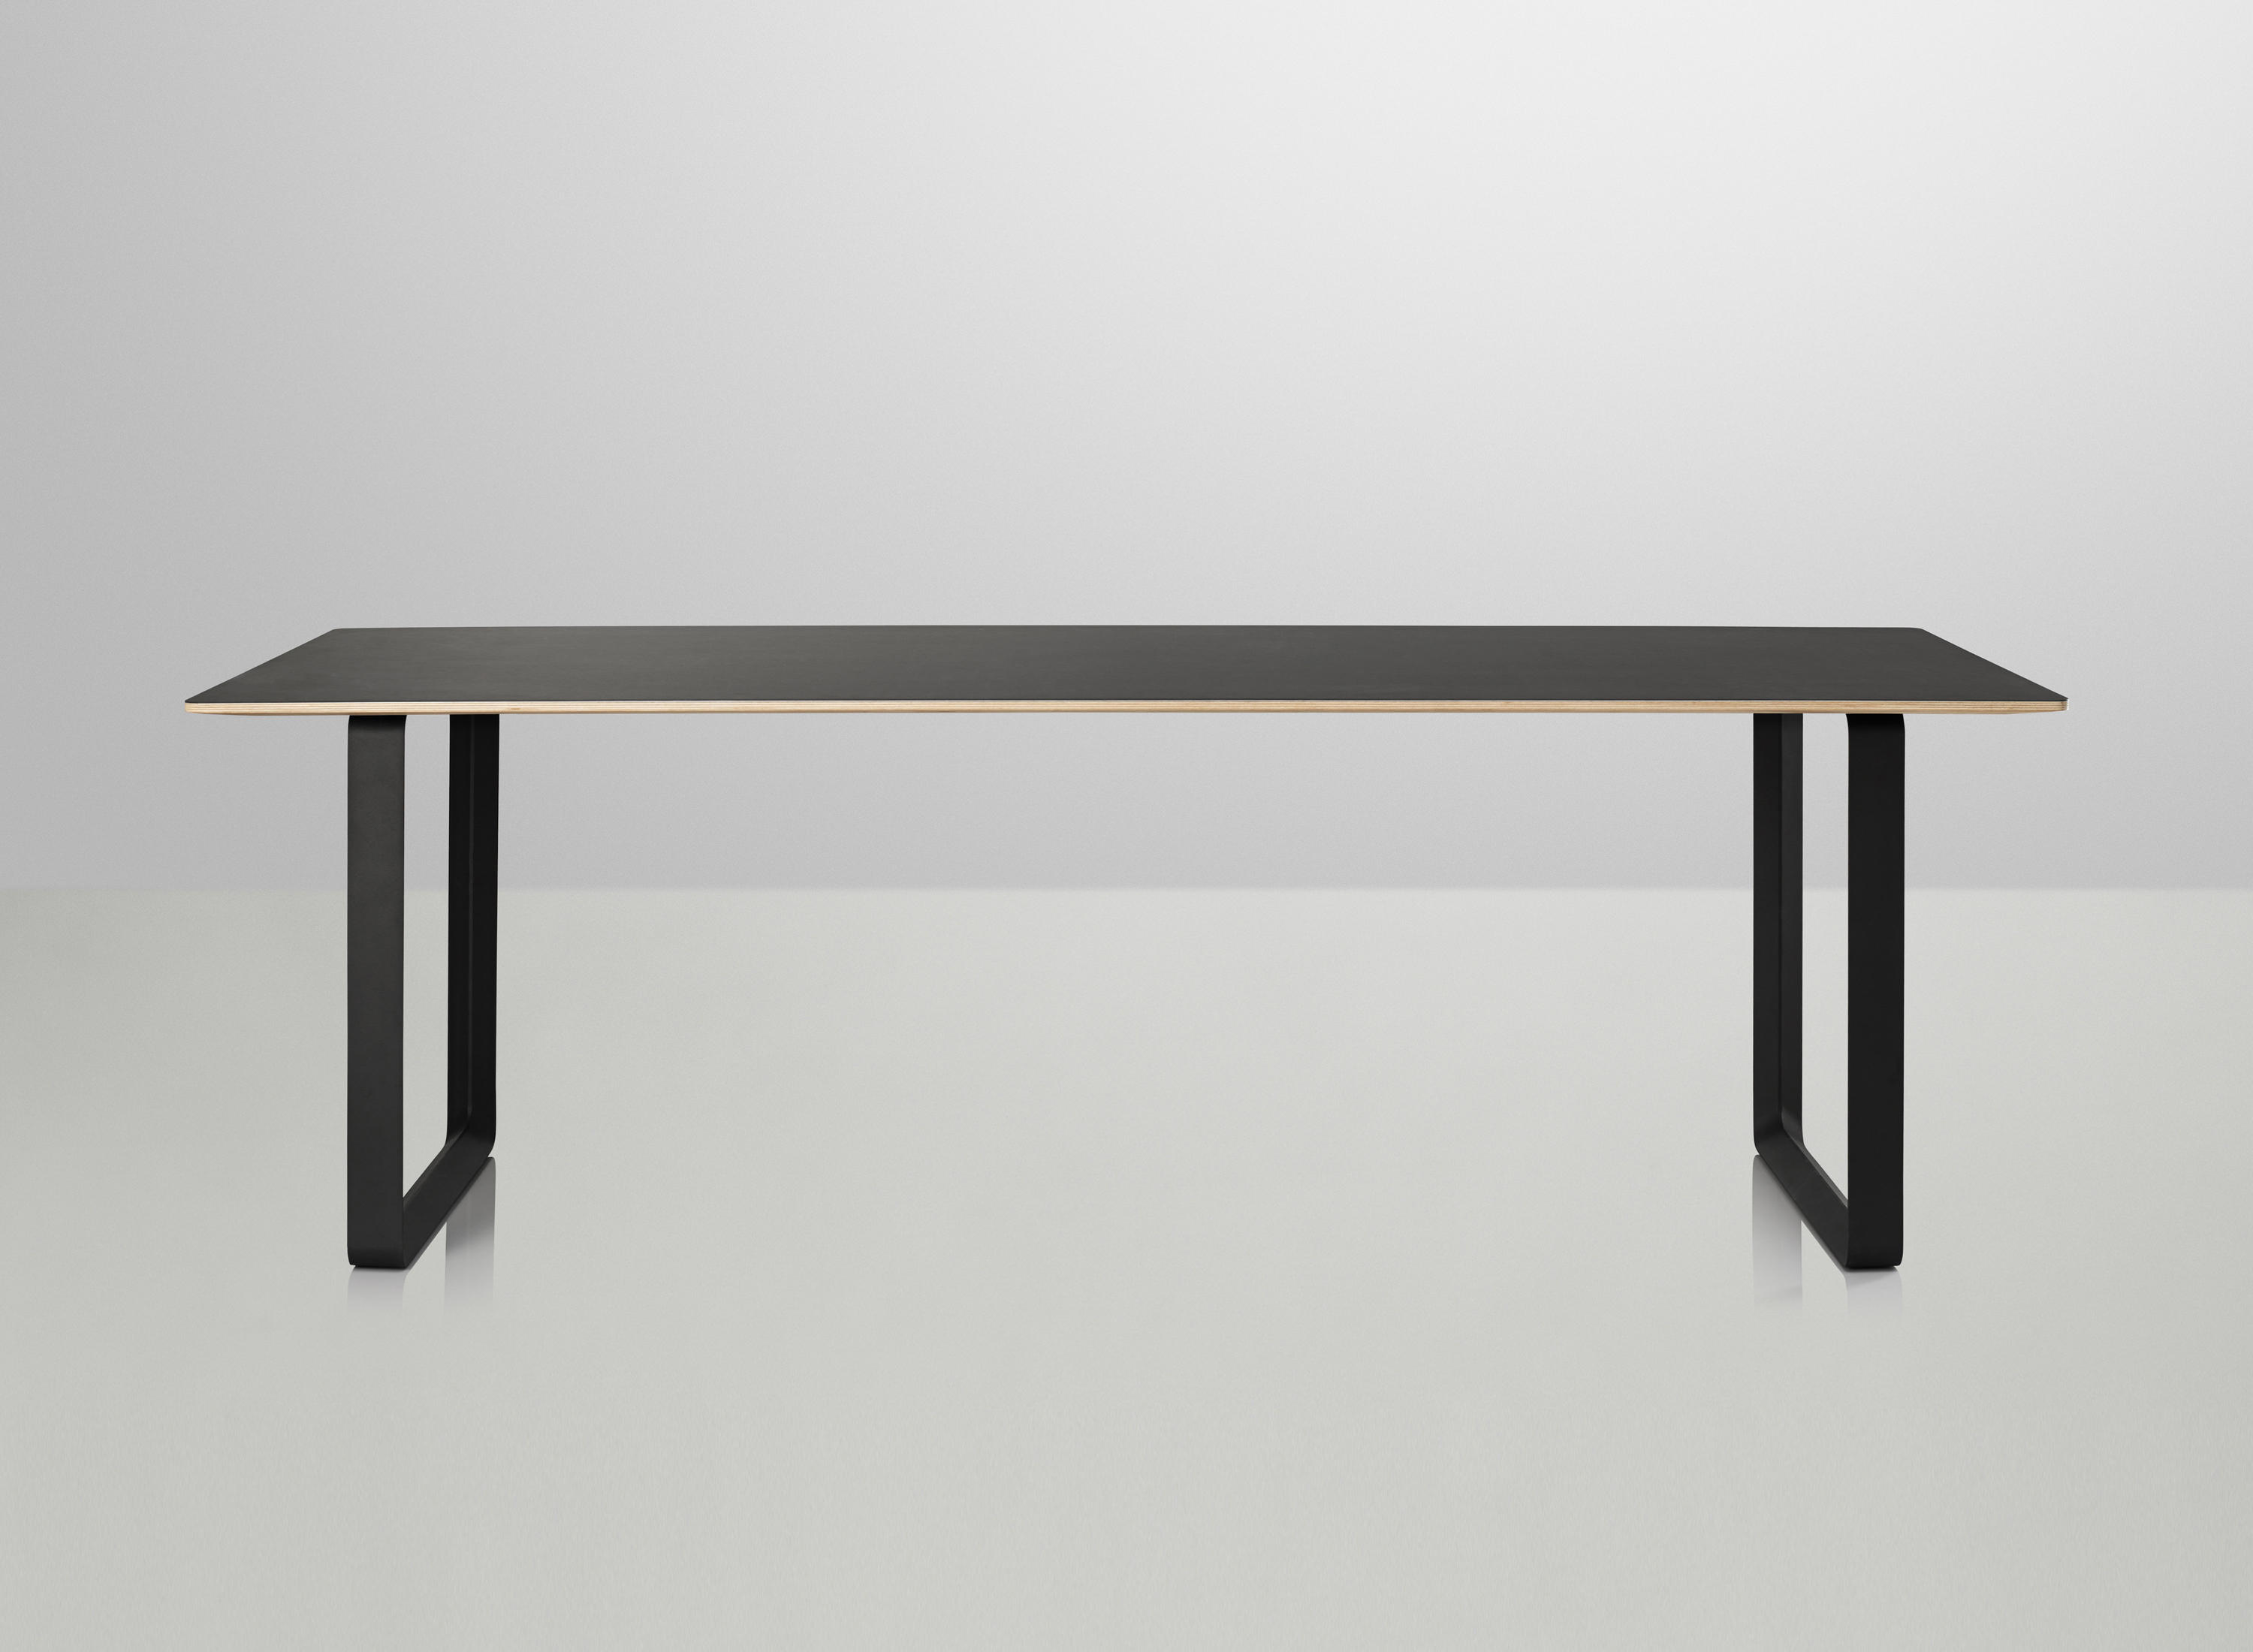 7070 DINING TABLE EXTRA LARGE Canteen tables from Muuto